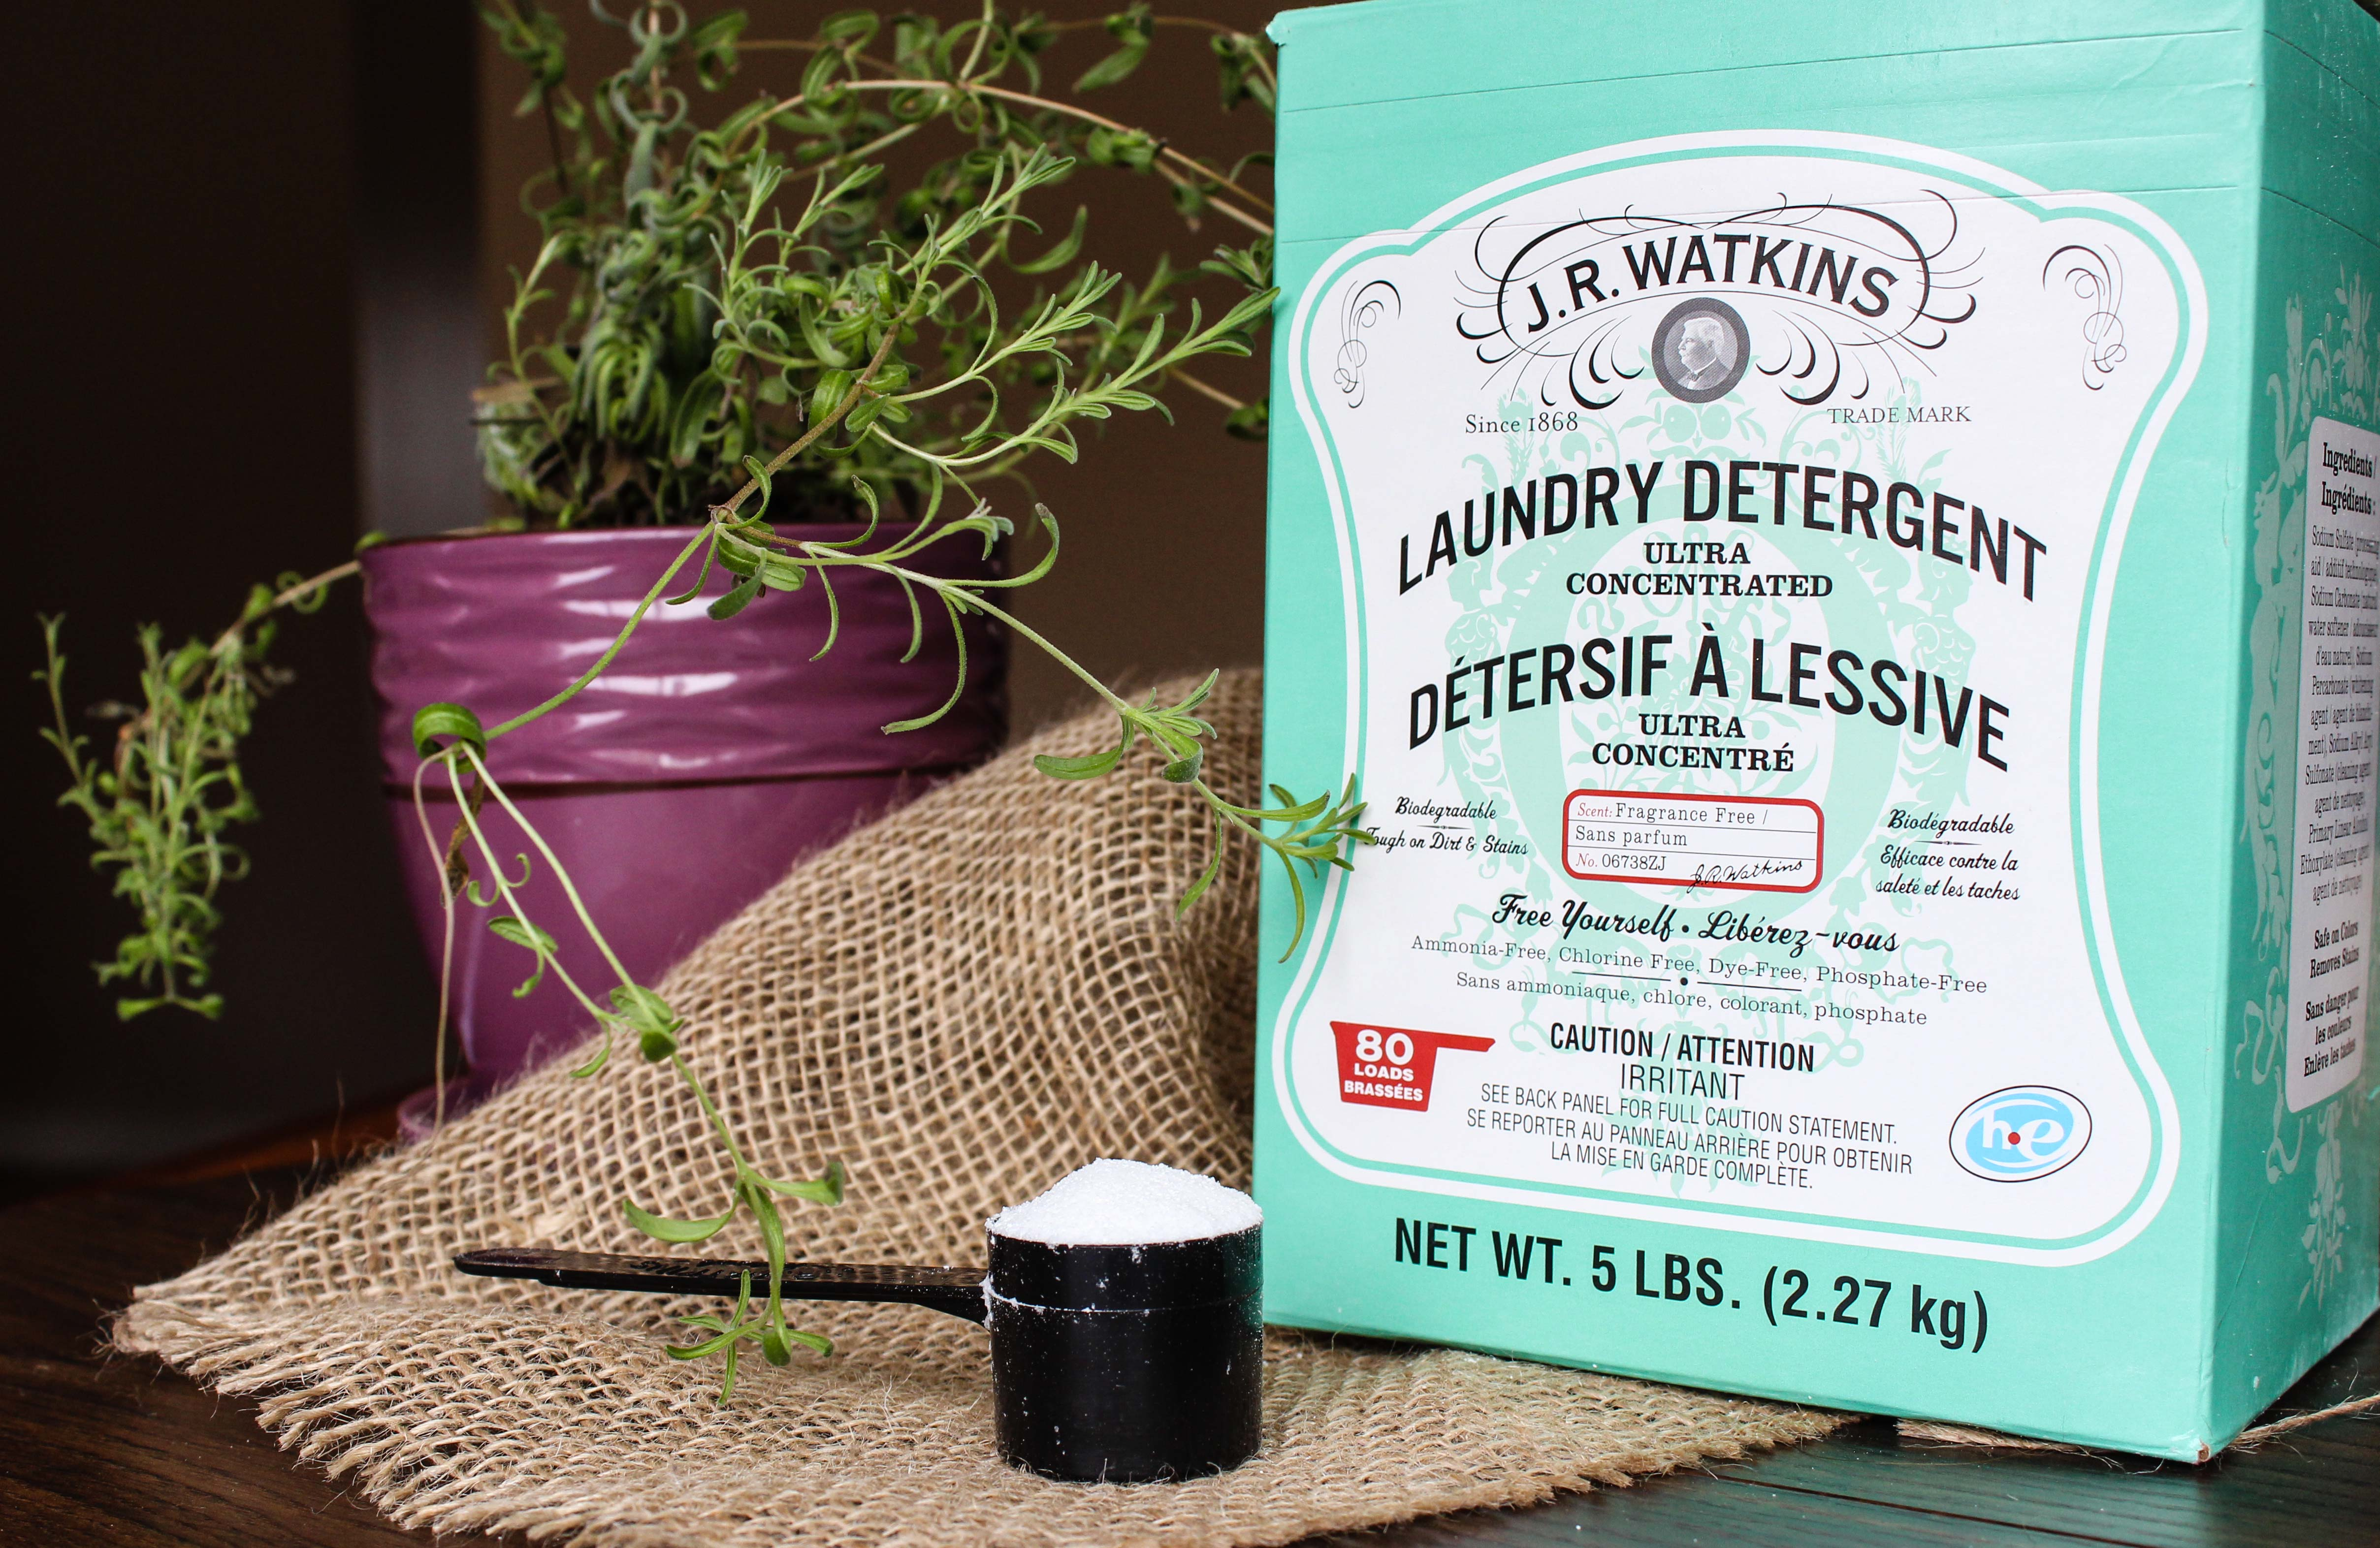 J.R Watkins Powder Laundry Detergent Review   Green Up Your Laundry